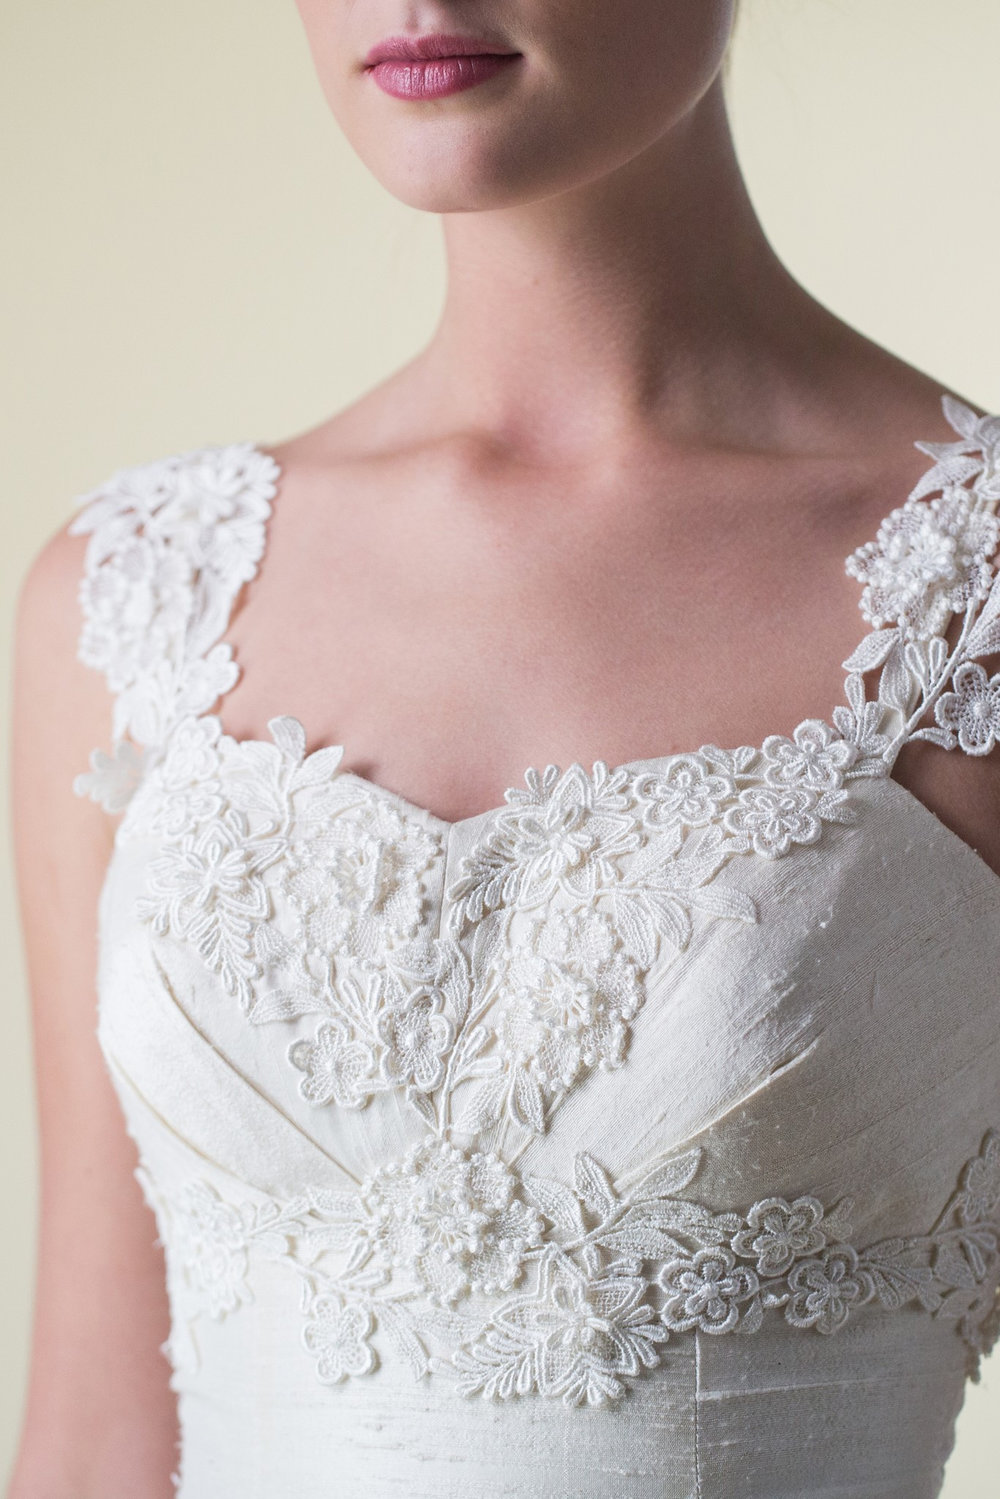 11 ethical brands you need to know about when planning a wedding ...